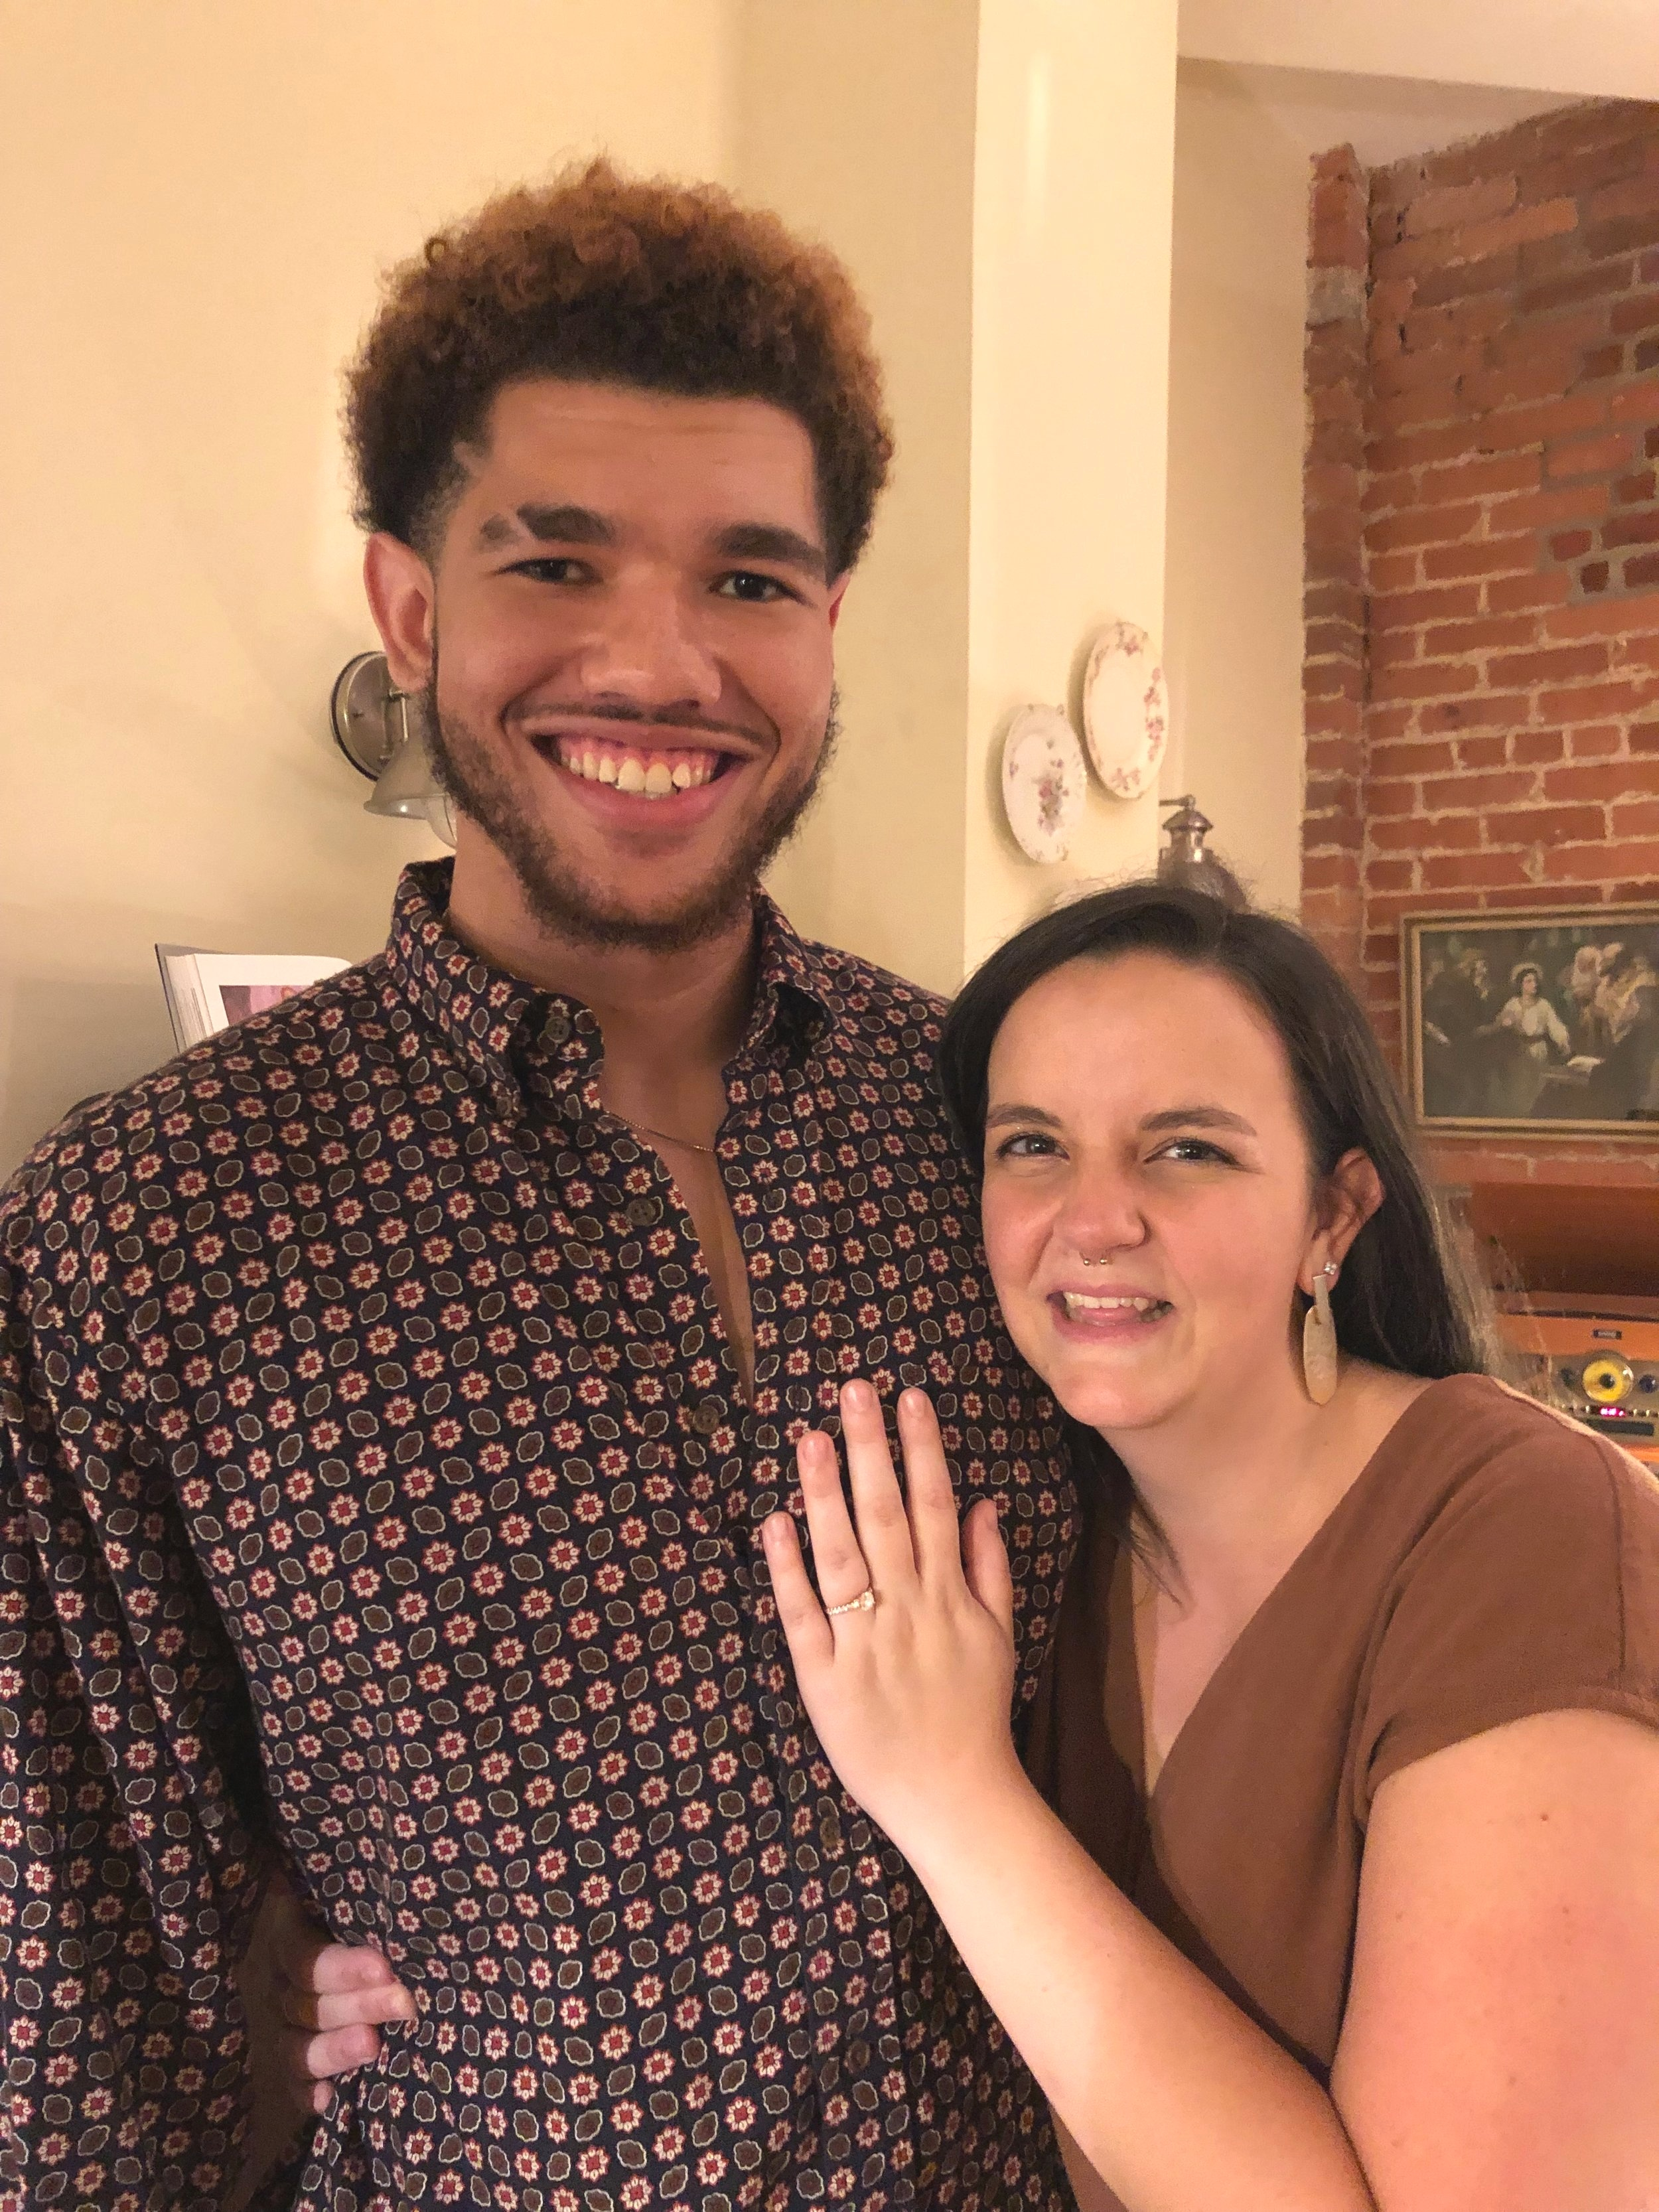 Our daughter Kendra got engaged! We're so happy for her and her fiance, Jordan, and we loved celebrating with them this past week!  Many more photos and exclamation marks to come!